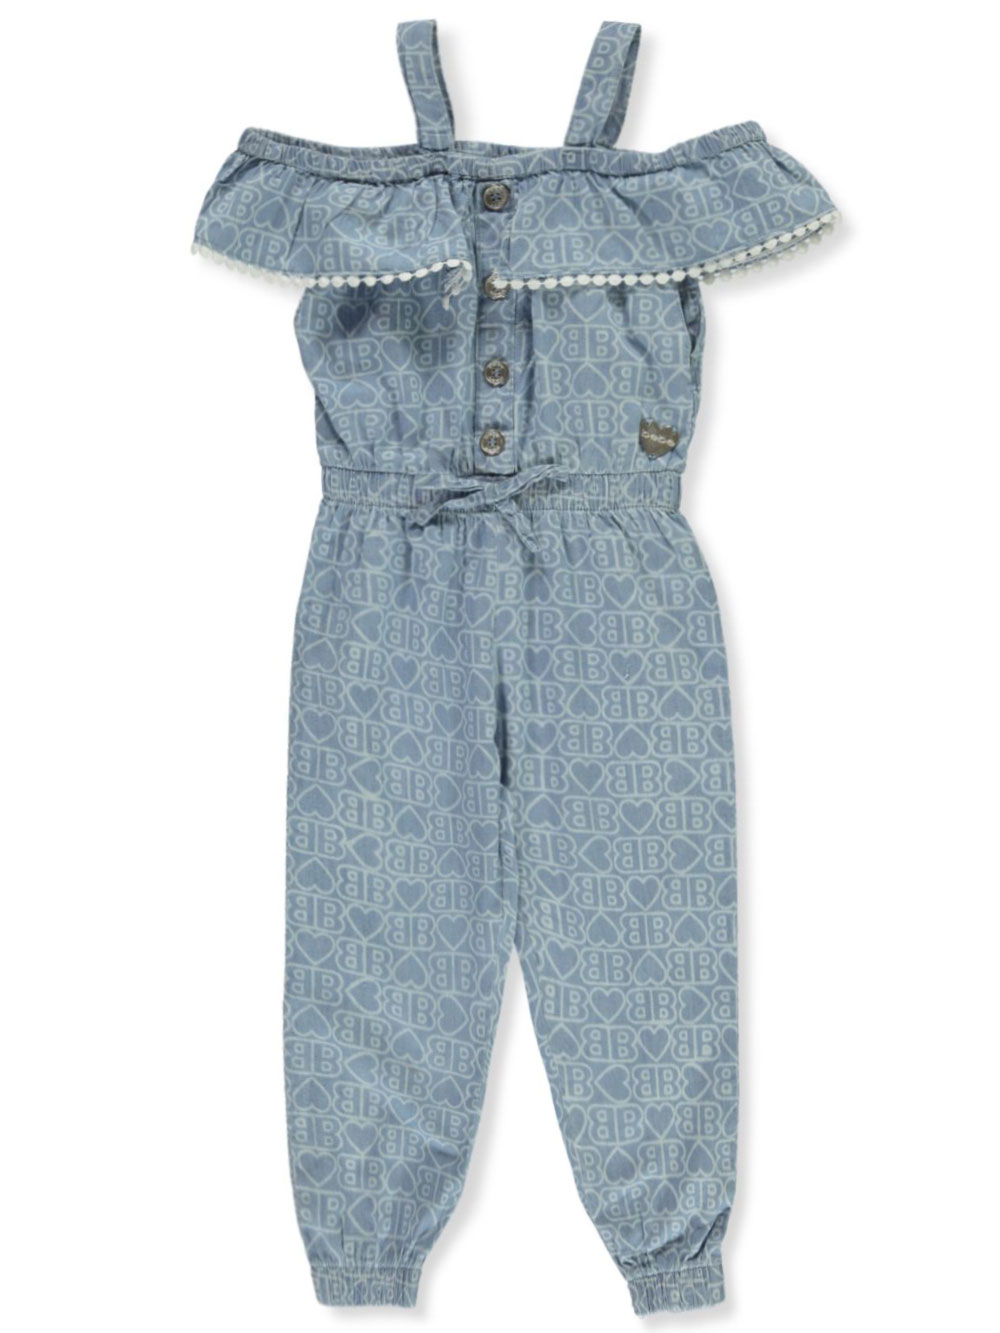 Size 6x Rompers Jumpsuits for Girls